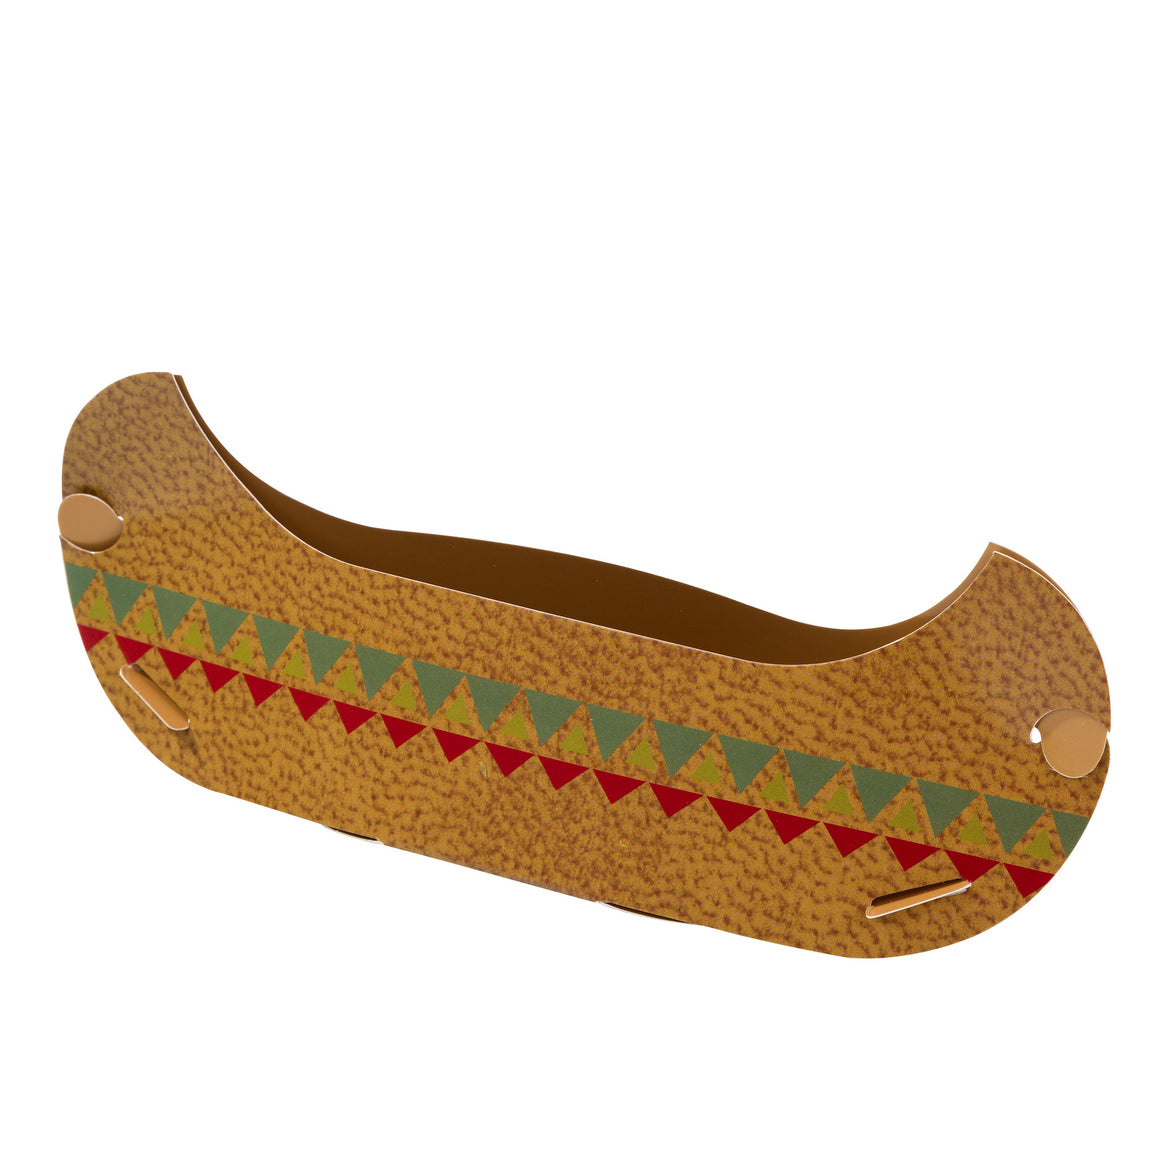 Pow Wow 6 Canoe Treat Holder